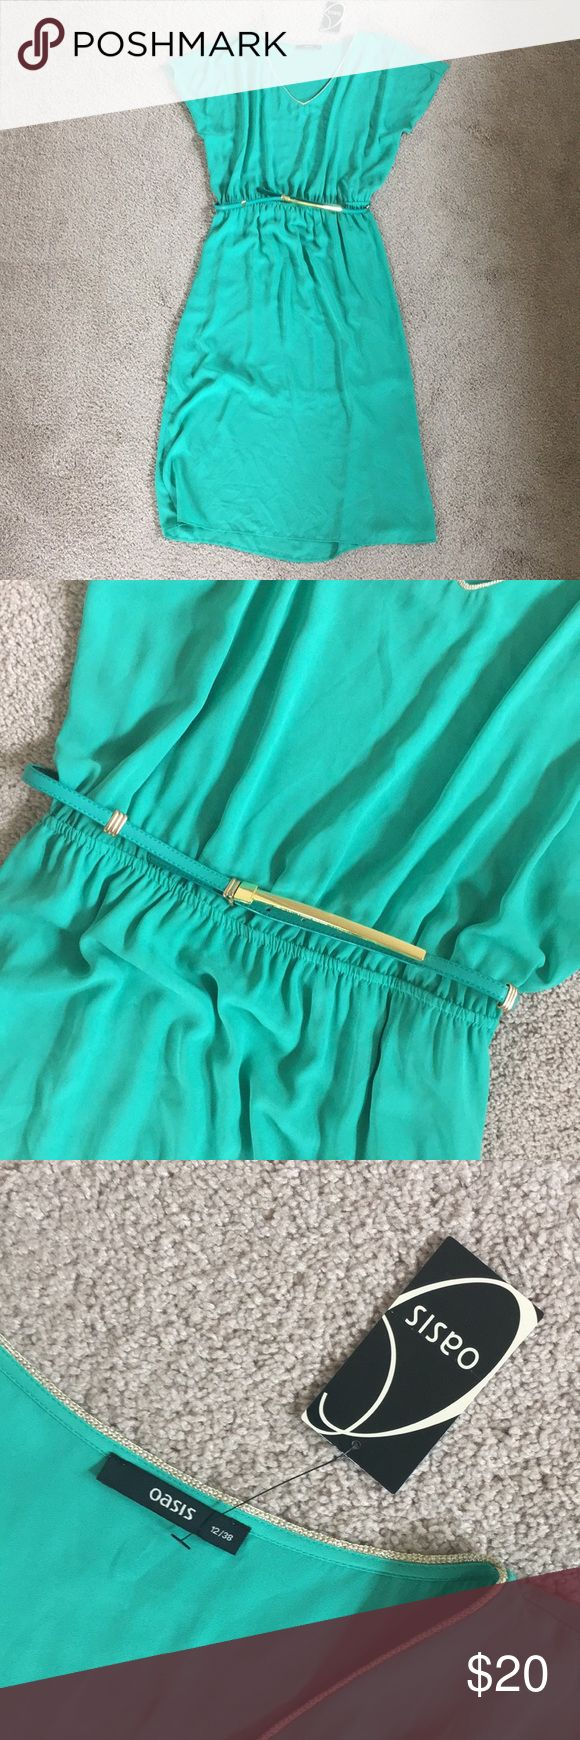 Brand new Green  flowy Dress with belt (20% 0ff for  3 or more bundle purchase) It is brand new with belt... fits small- medium in great condition, sheer flowy Dress great for summer get away or a night out dress. Oasis Dresses Midi